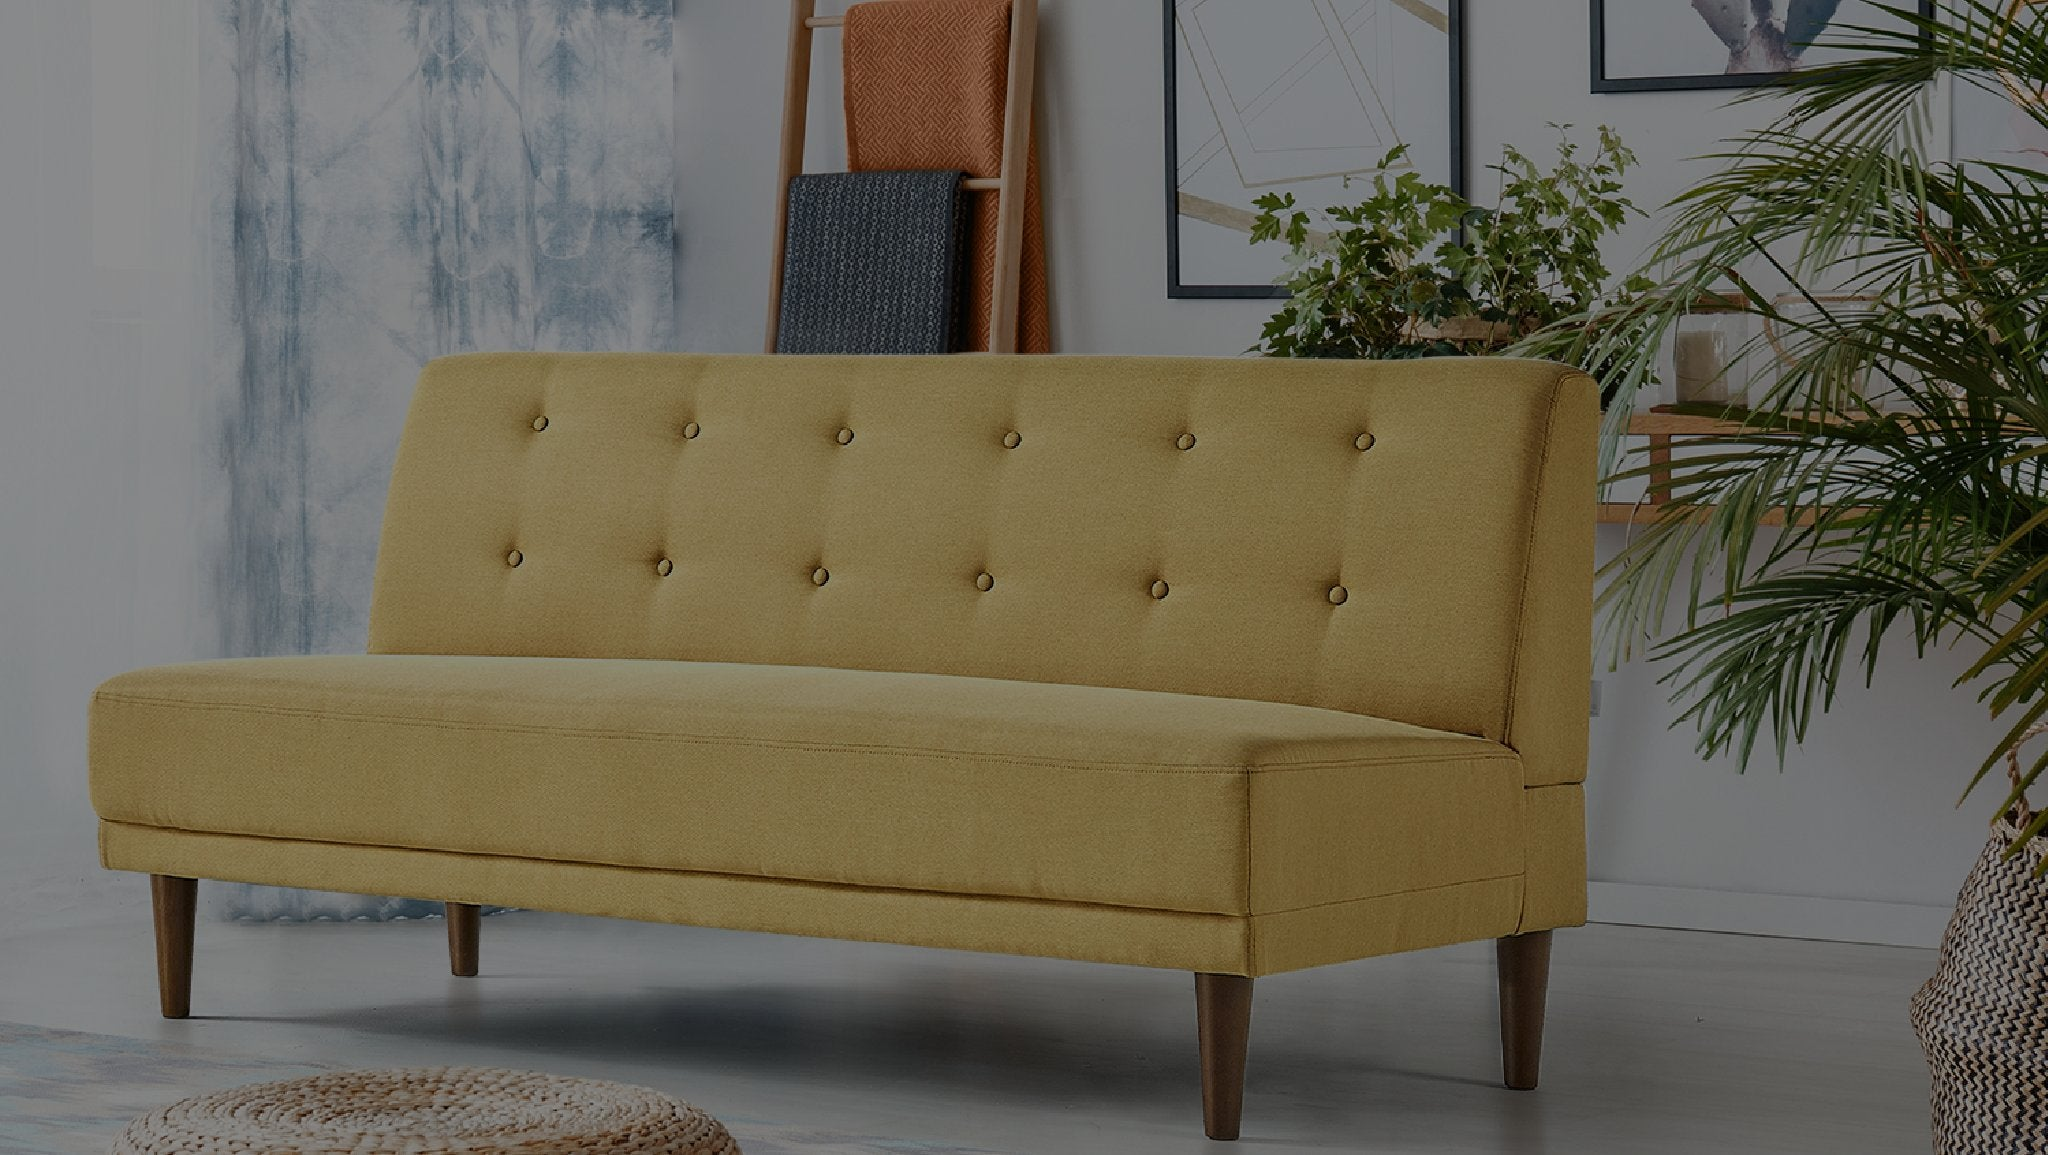 Sofas & Loveseats on Clearance | 30% Off Stylish Furniture | Zinus